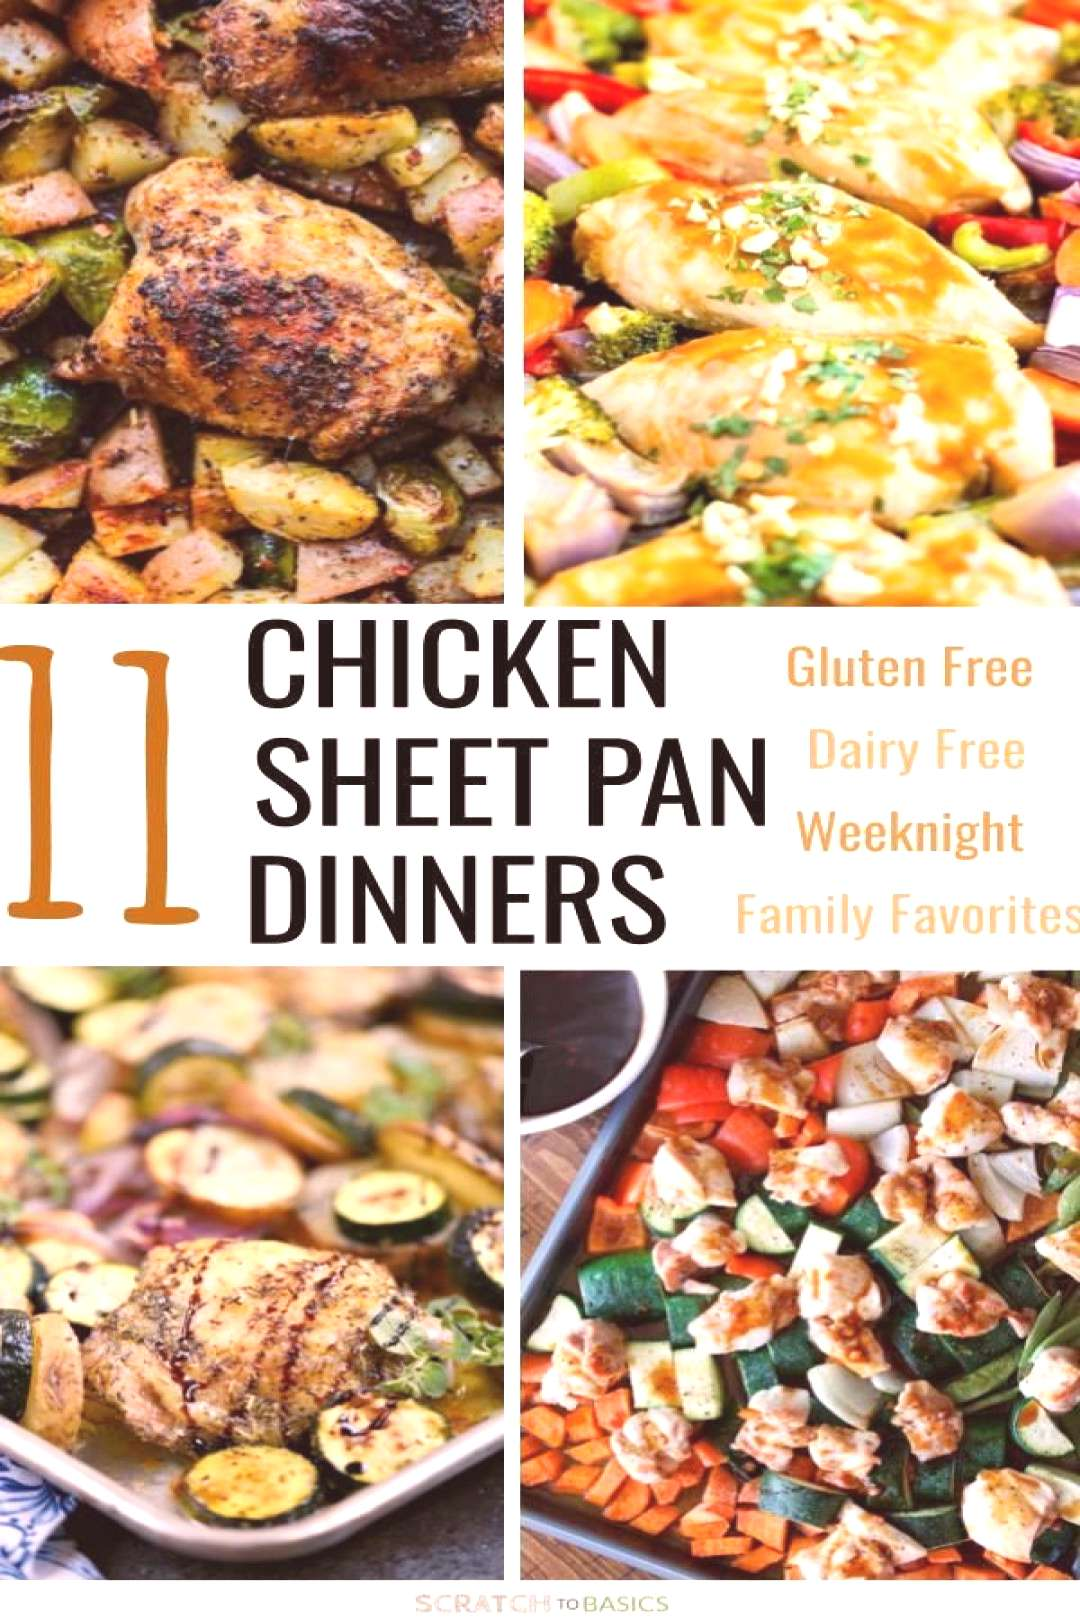 24 Amazing Gluten Free Sheet Pan Dinners Your Family Will Love -  Check out these awesome chicken w